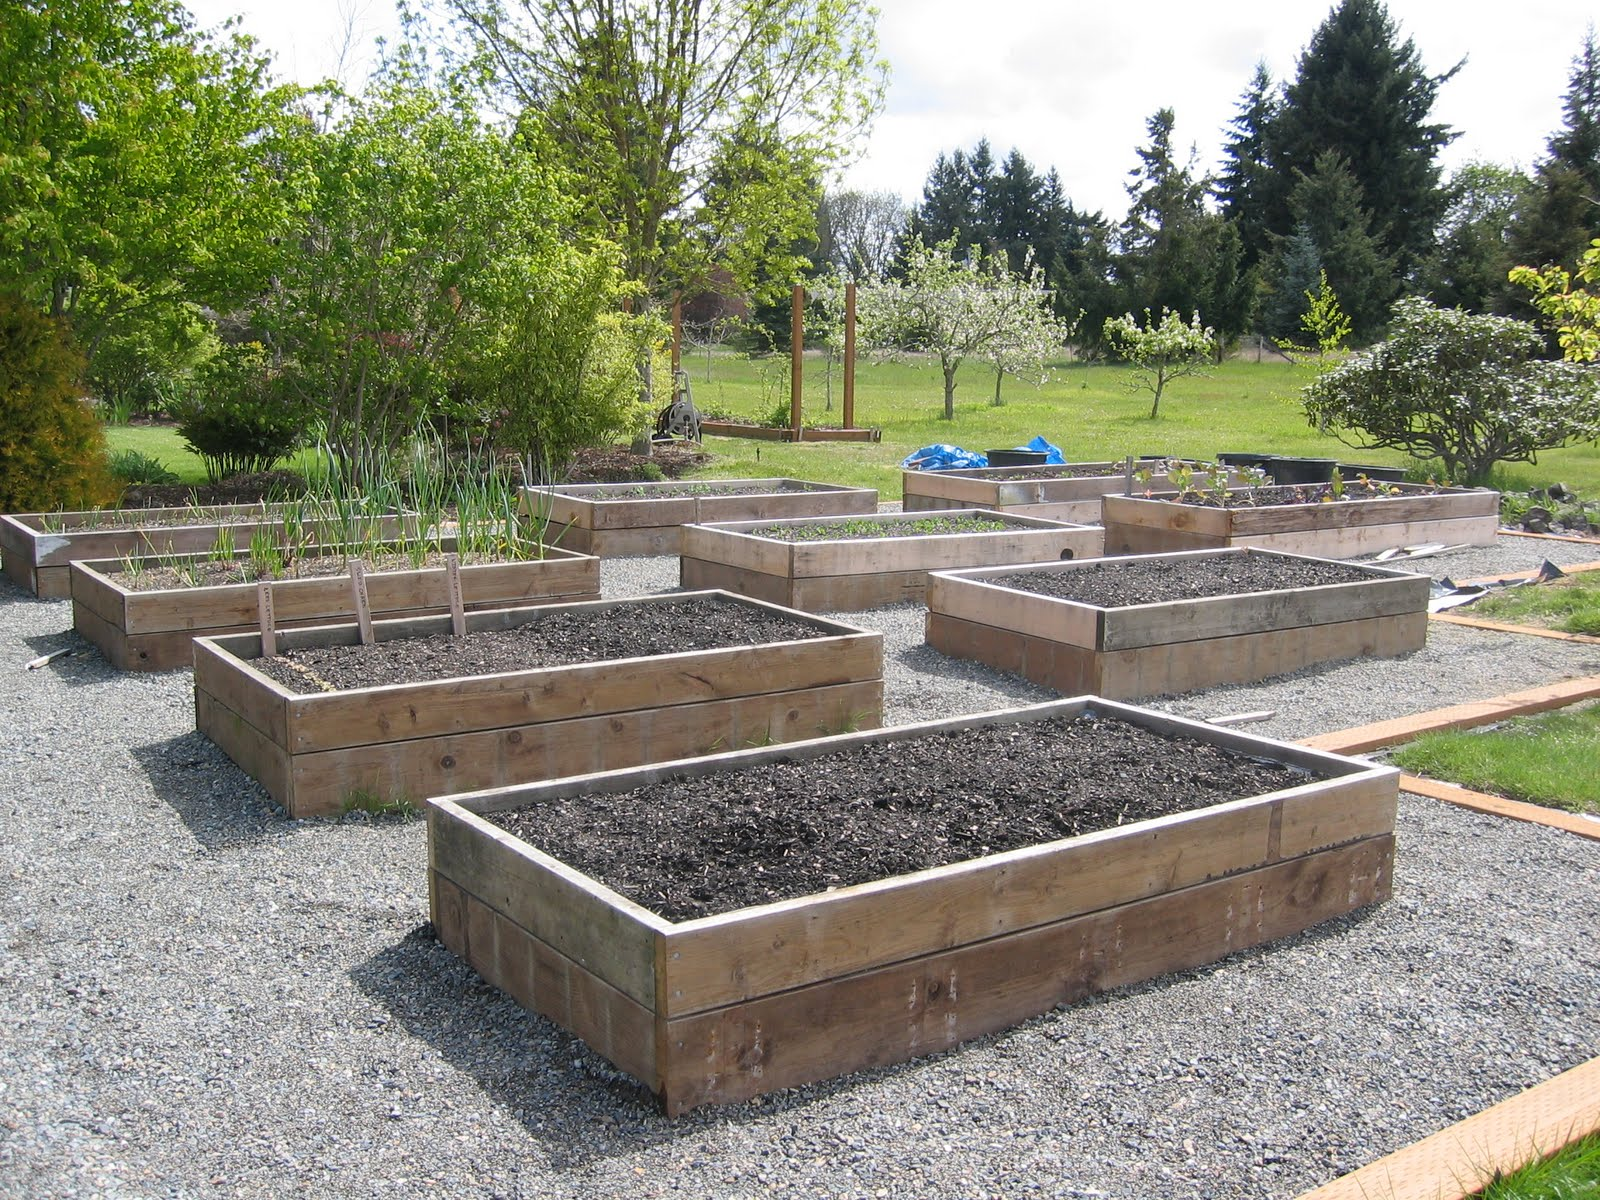 The tacoma kitchen garden journal raised vegetable beds for Raised veggie garden plans